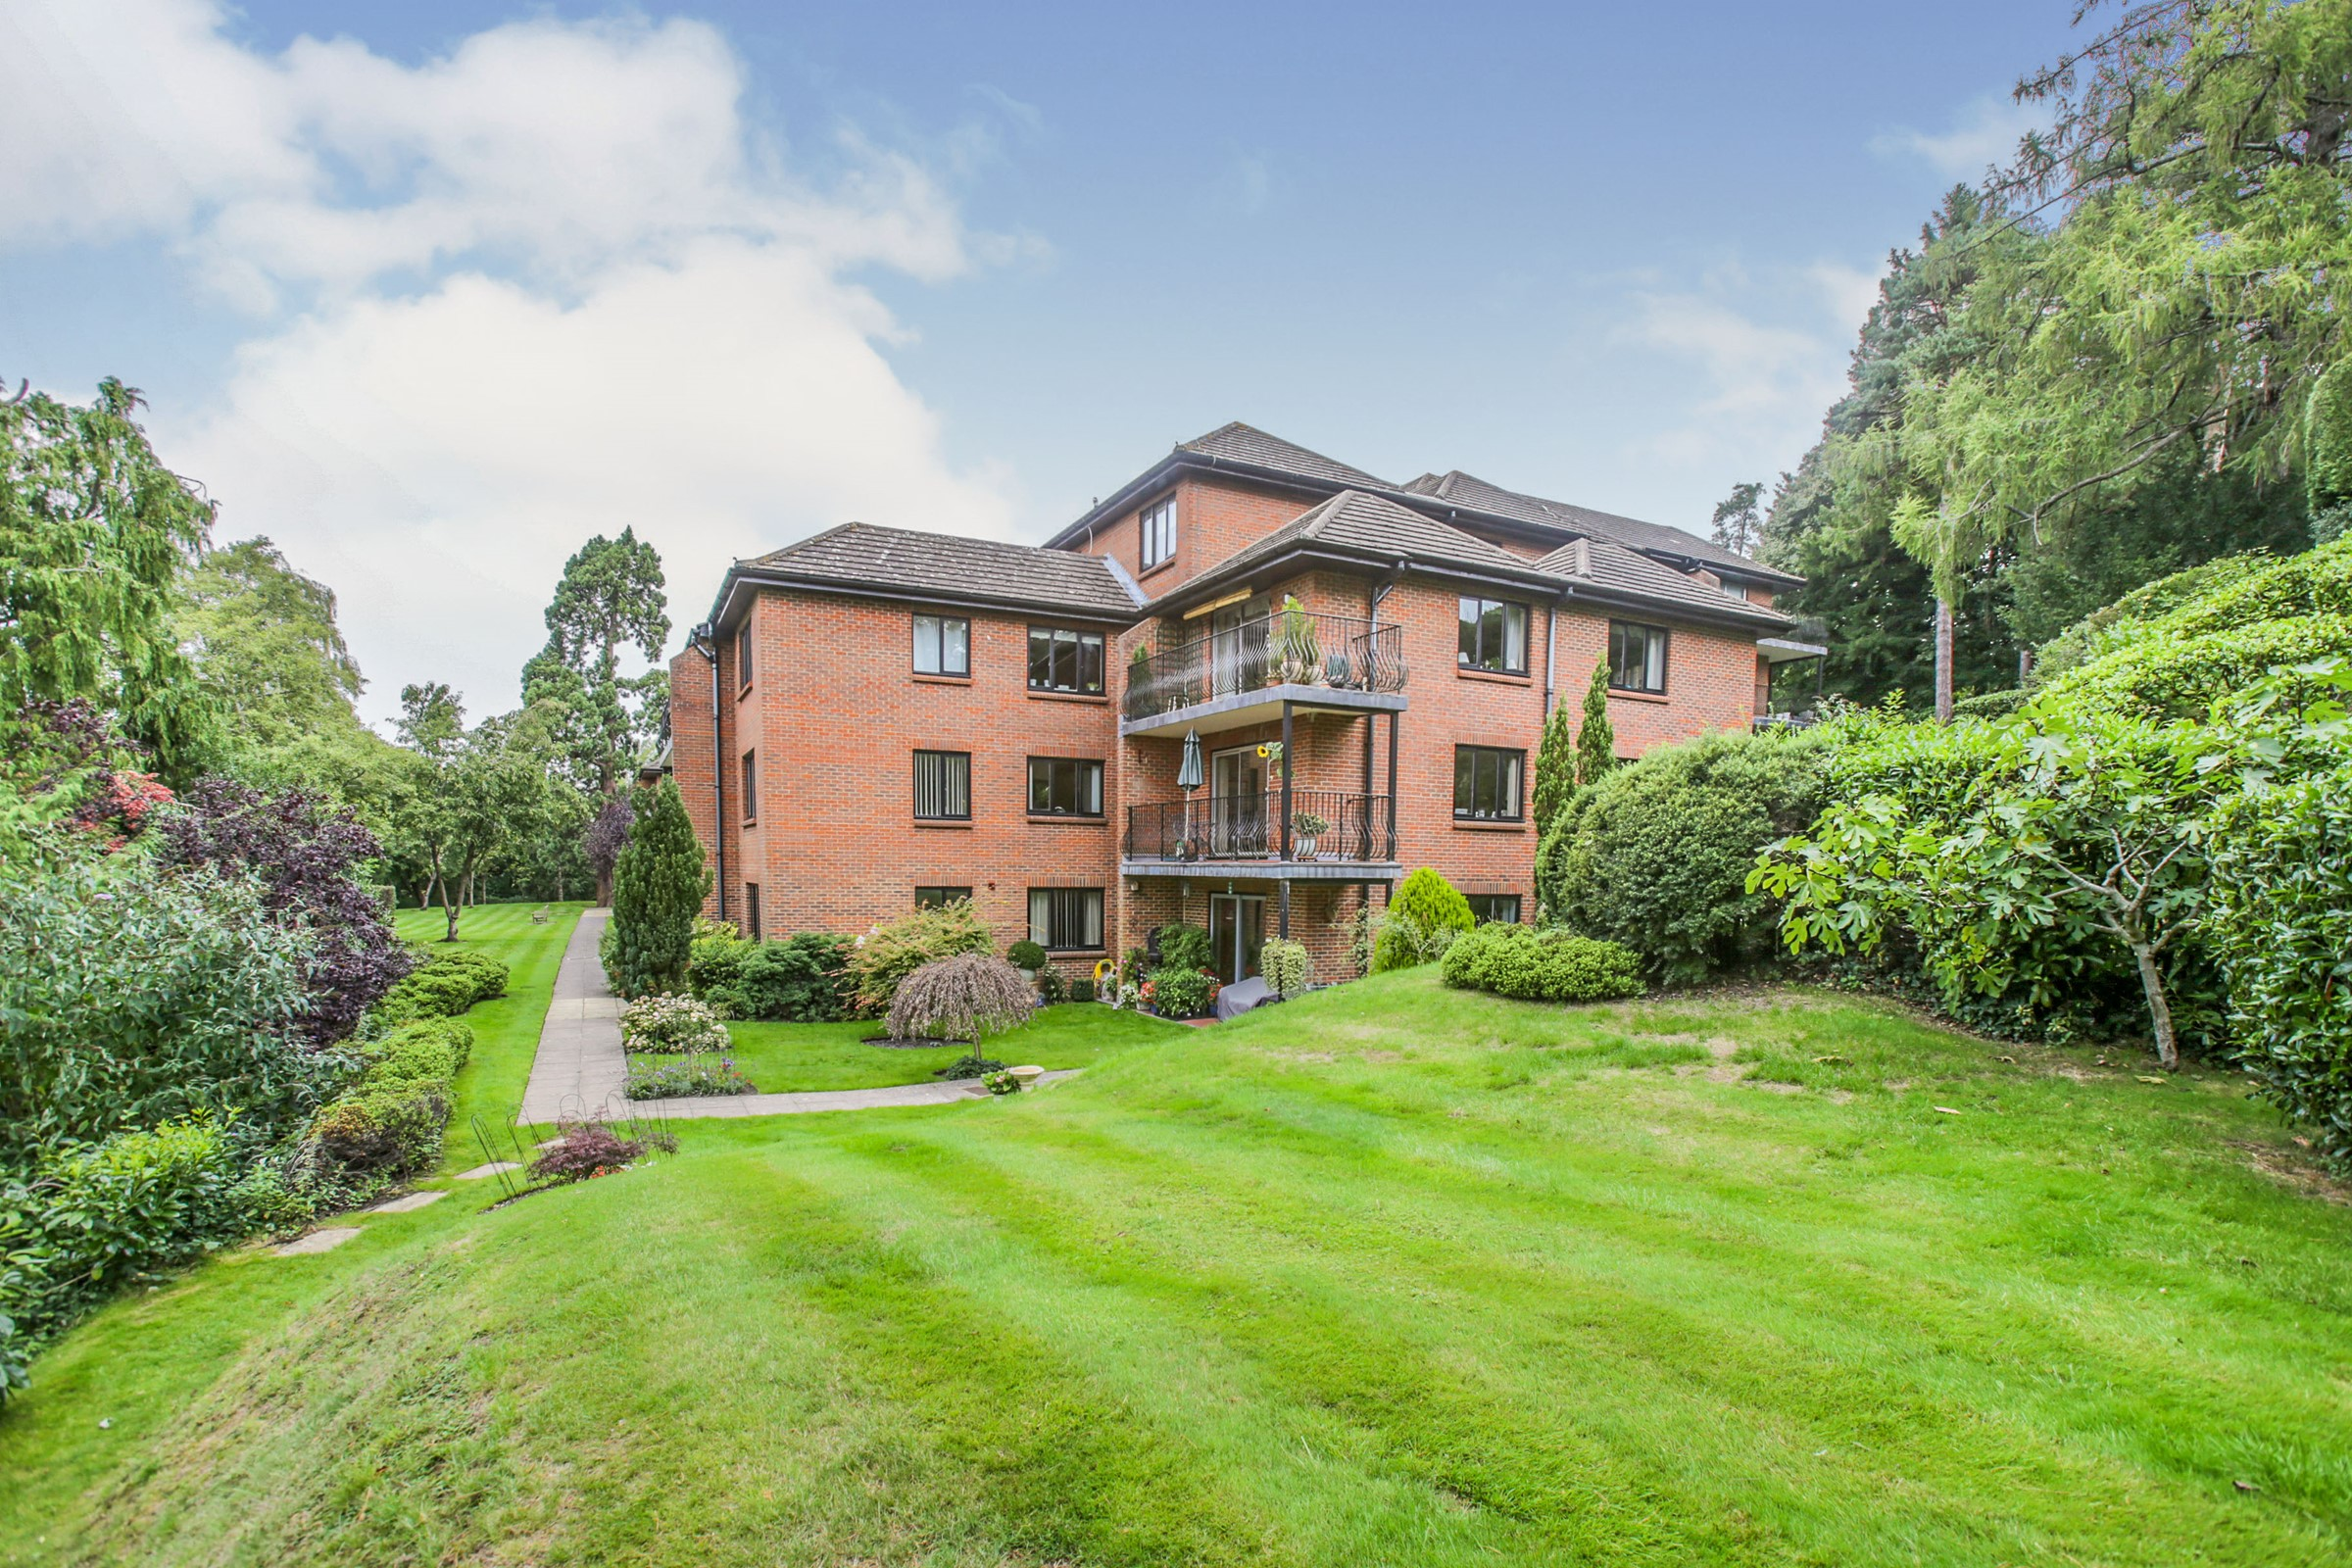 Dorin Court, Landscape Road, Warlingham, Surrey, CR6